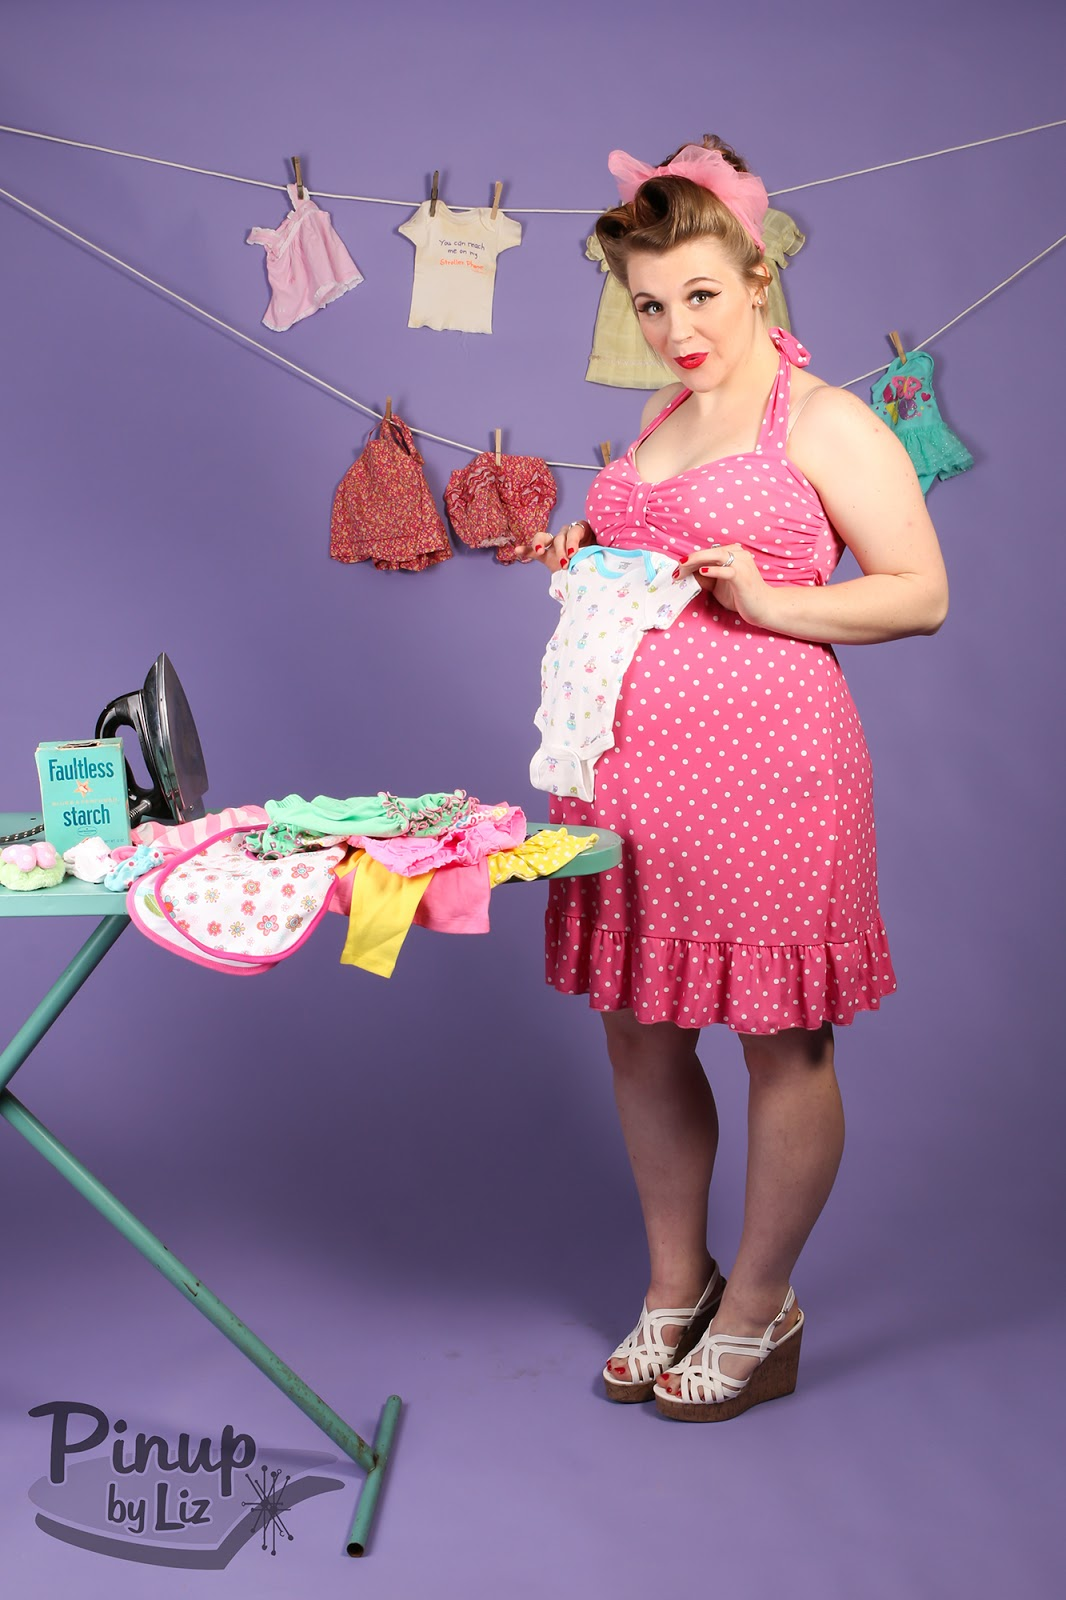 Pinup by liz session spotlight pin up maternity photo shoot ombrellifo Images